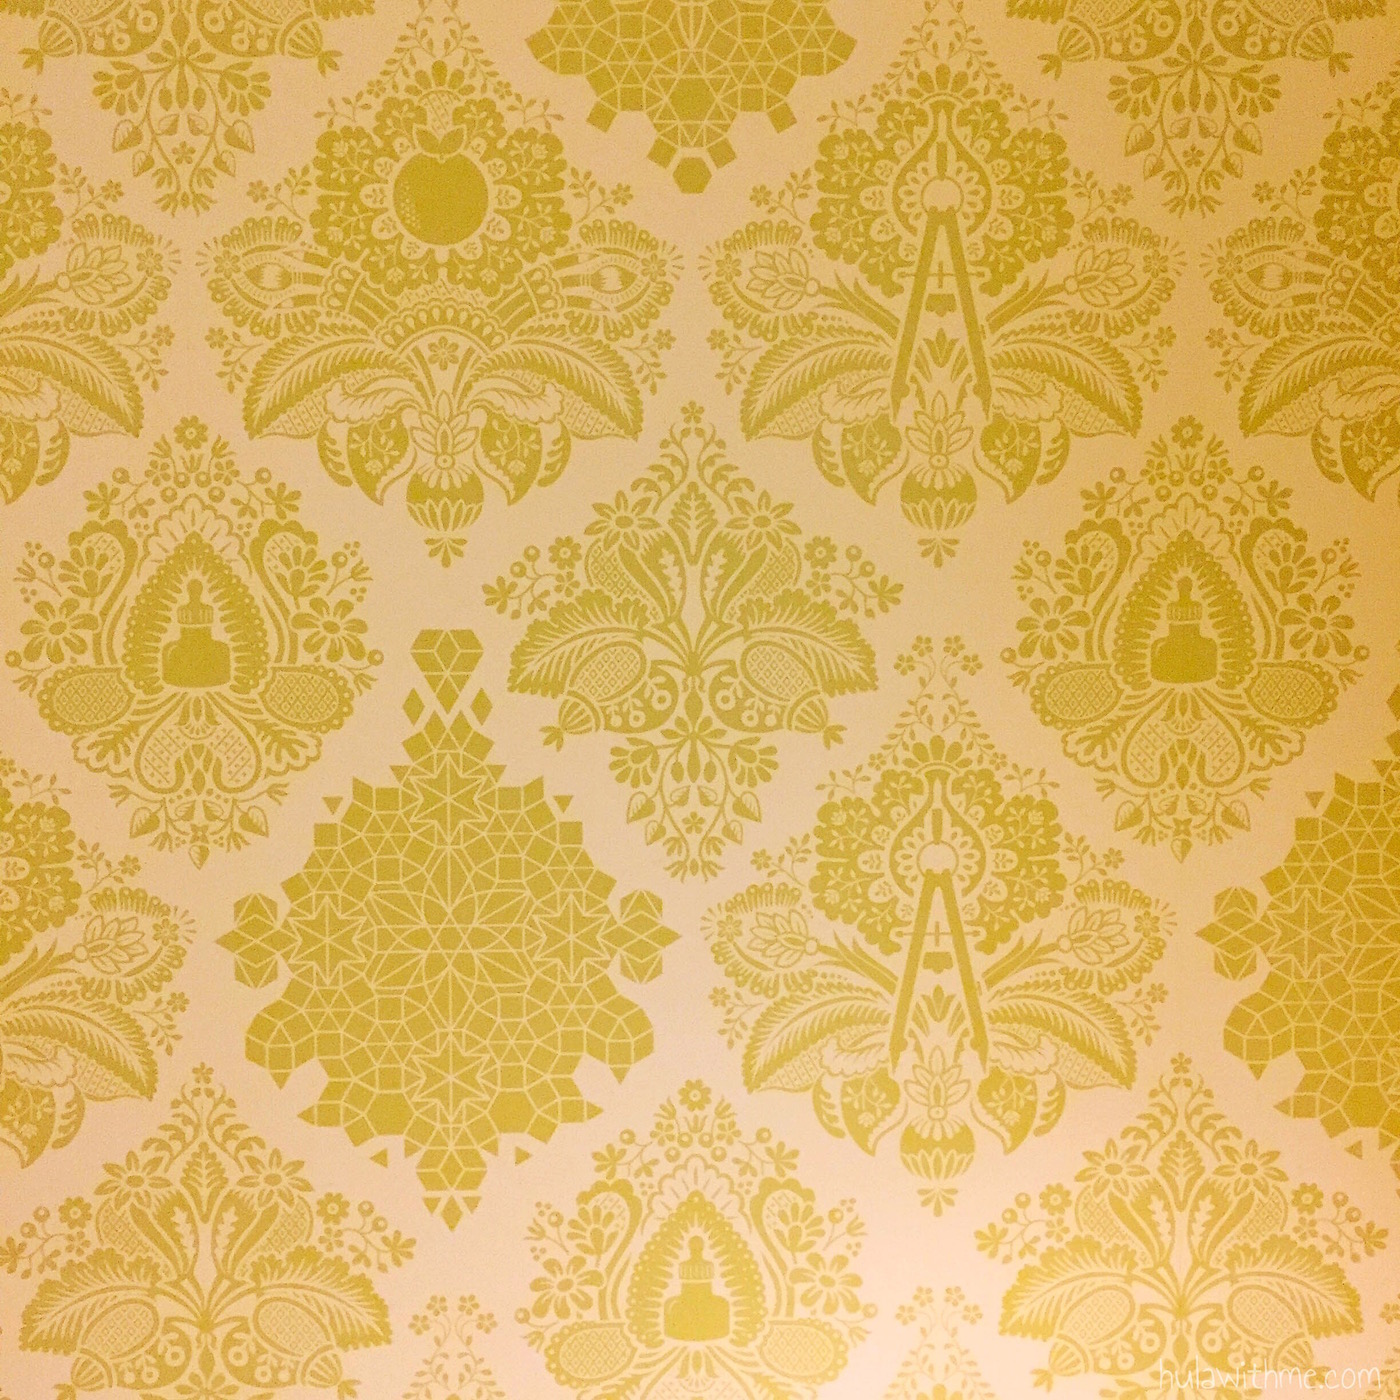 Bliss Spa in Boston, MA: Wall decor to die for.